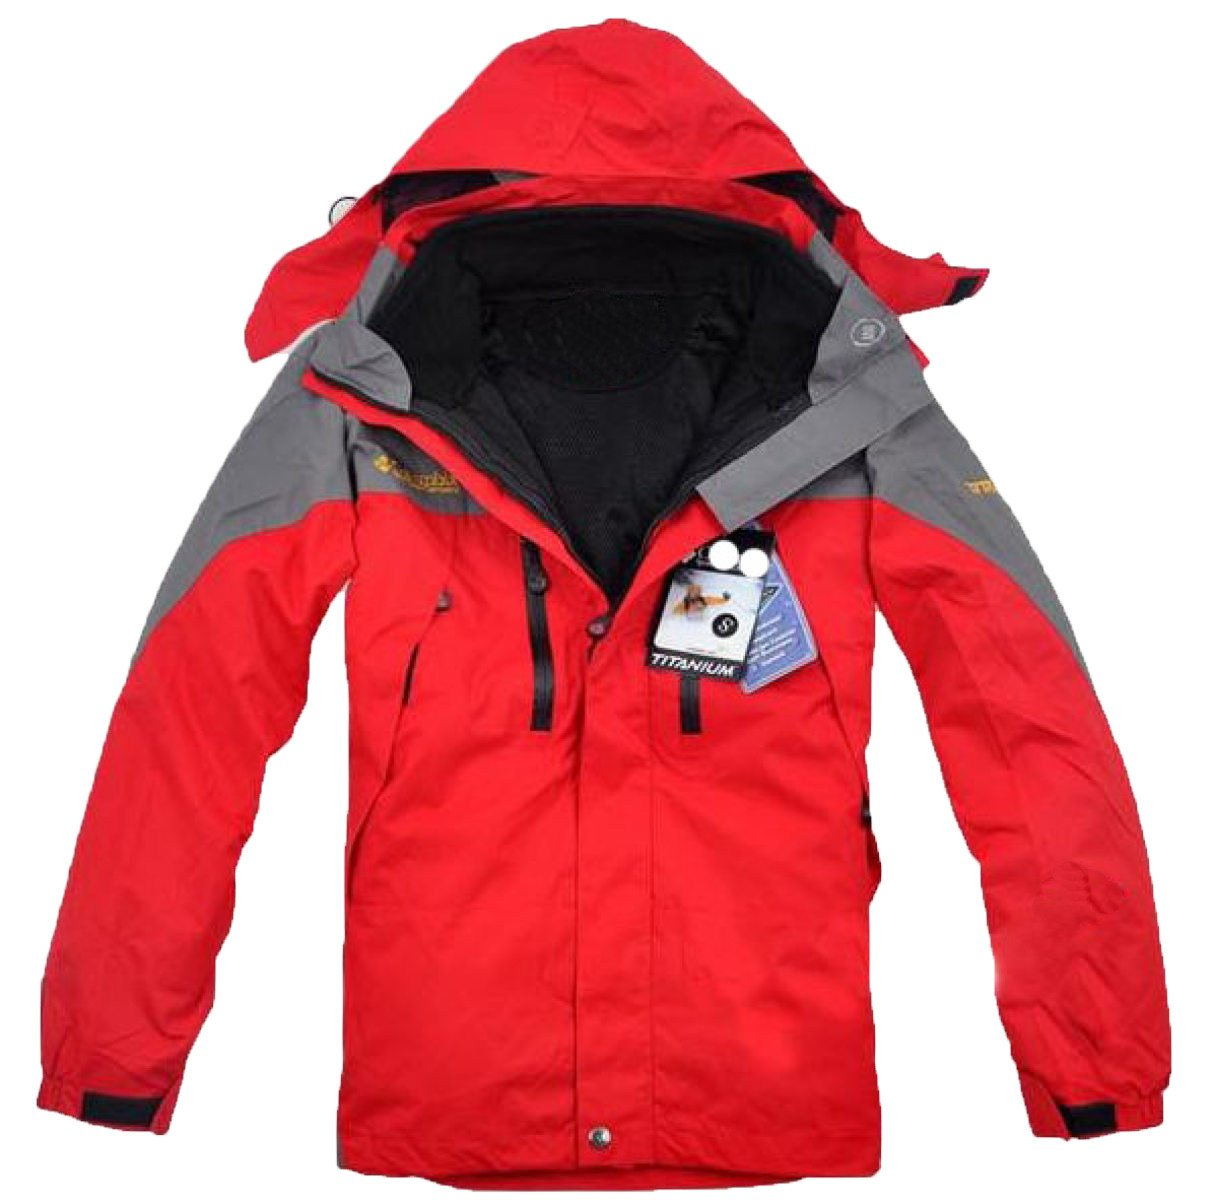 SUPSJD, Men, Outdoor, Sports, Warm, Ski Suits zhongyongmaoyi